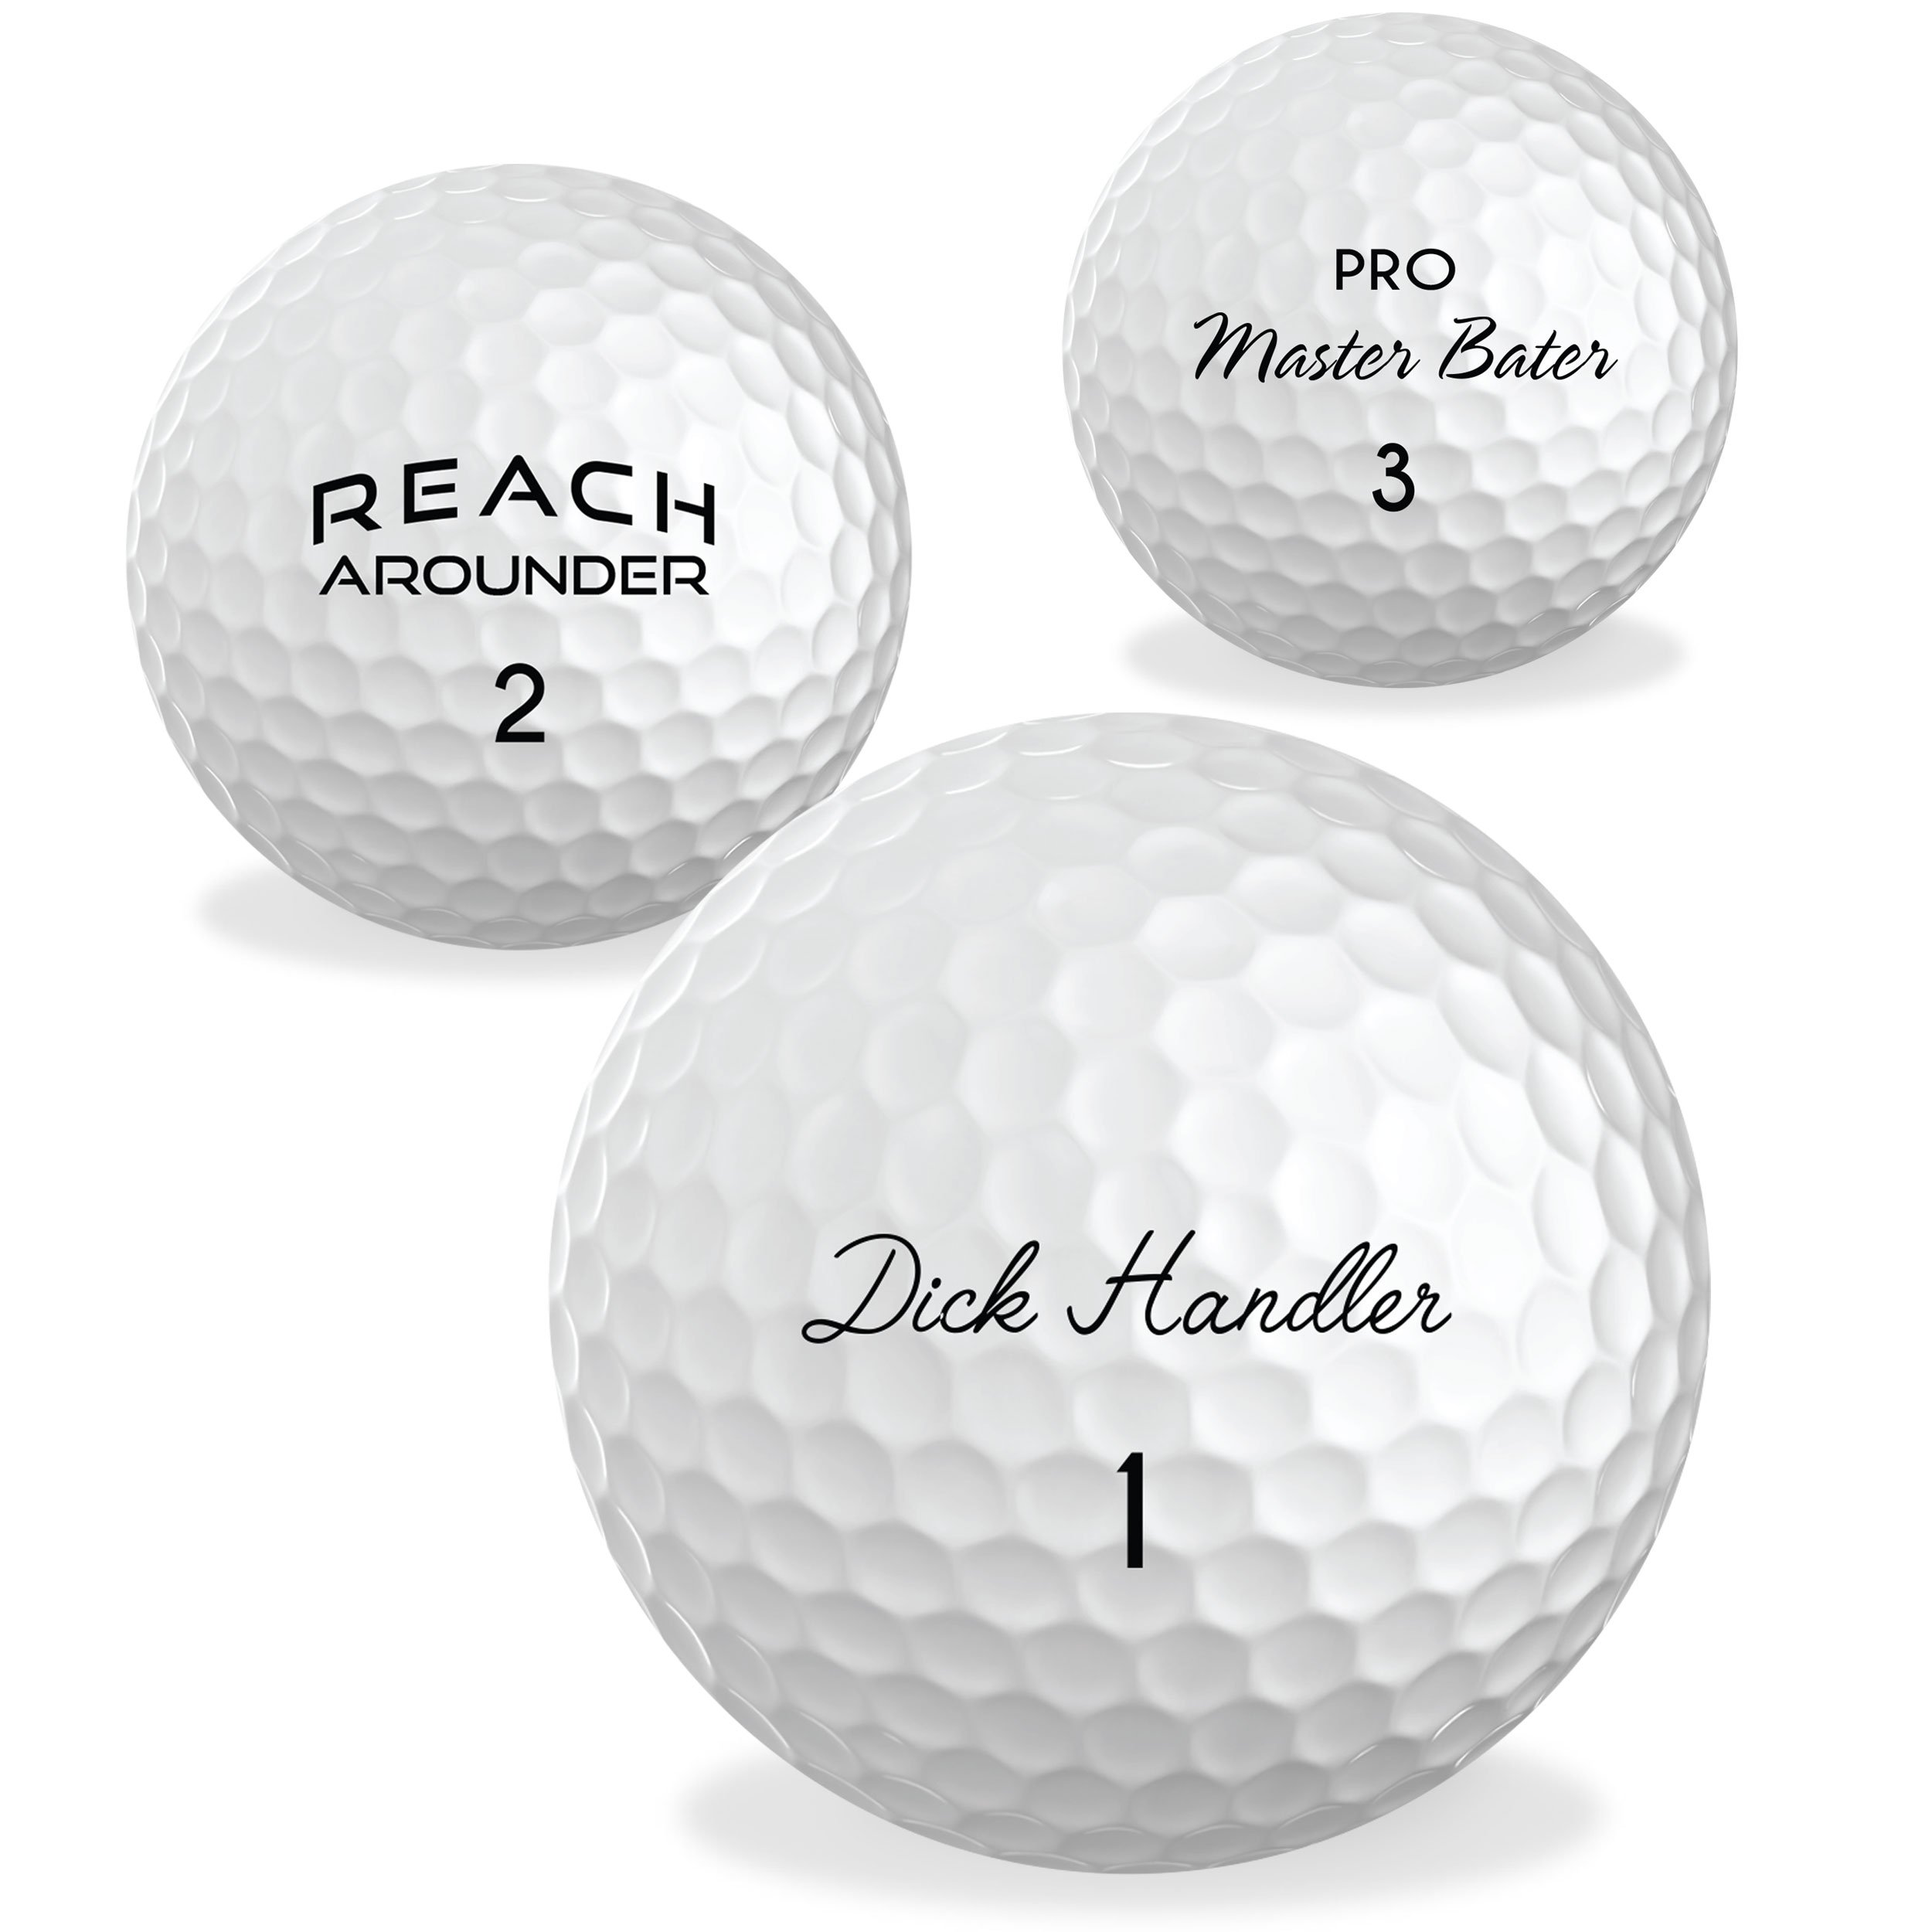 O'Rinn Ultimate Glory Prank Golf Balls - Sleeve, 3 Novelty Golf Balls. Perfect for Bachelor Parties, White Elephant Gifts, or just to Add Extra Fun to Your Game! by O'Rinn Golf